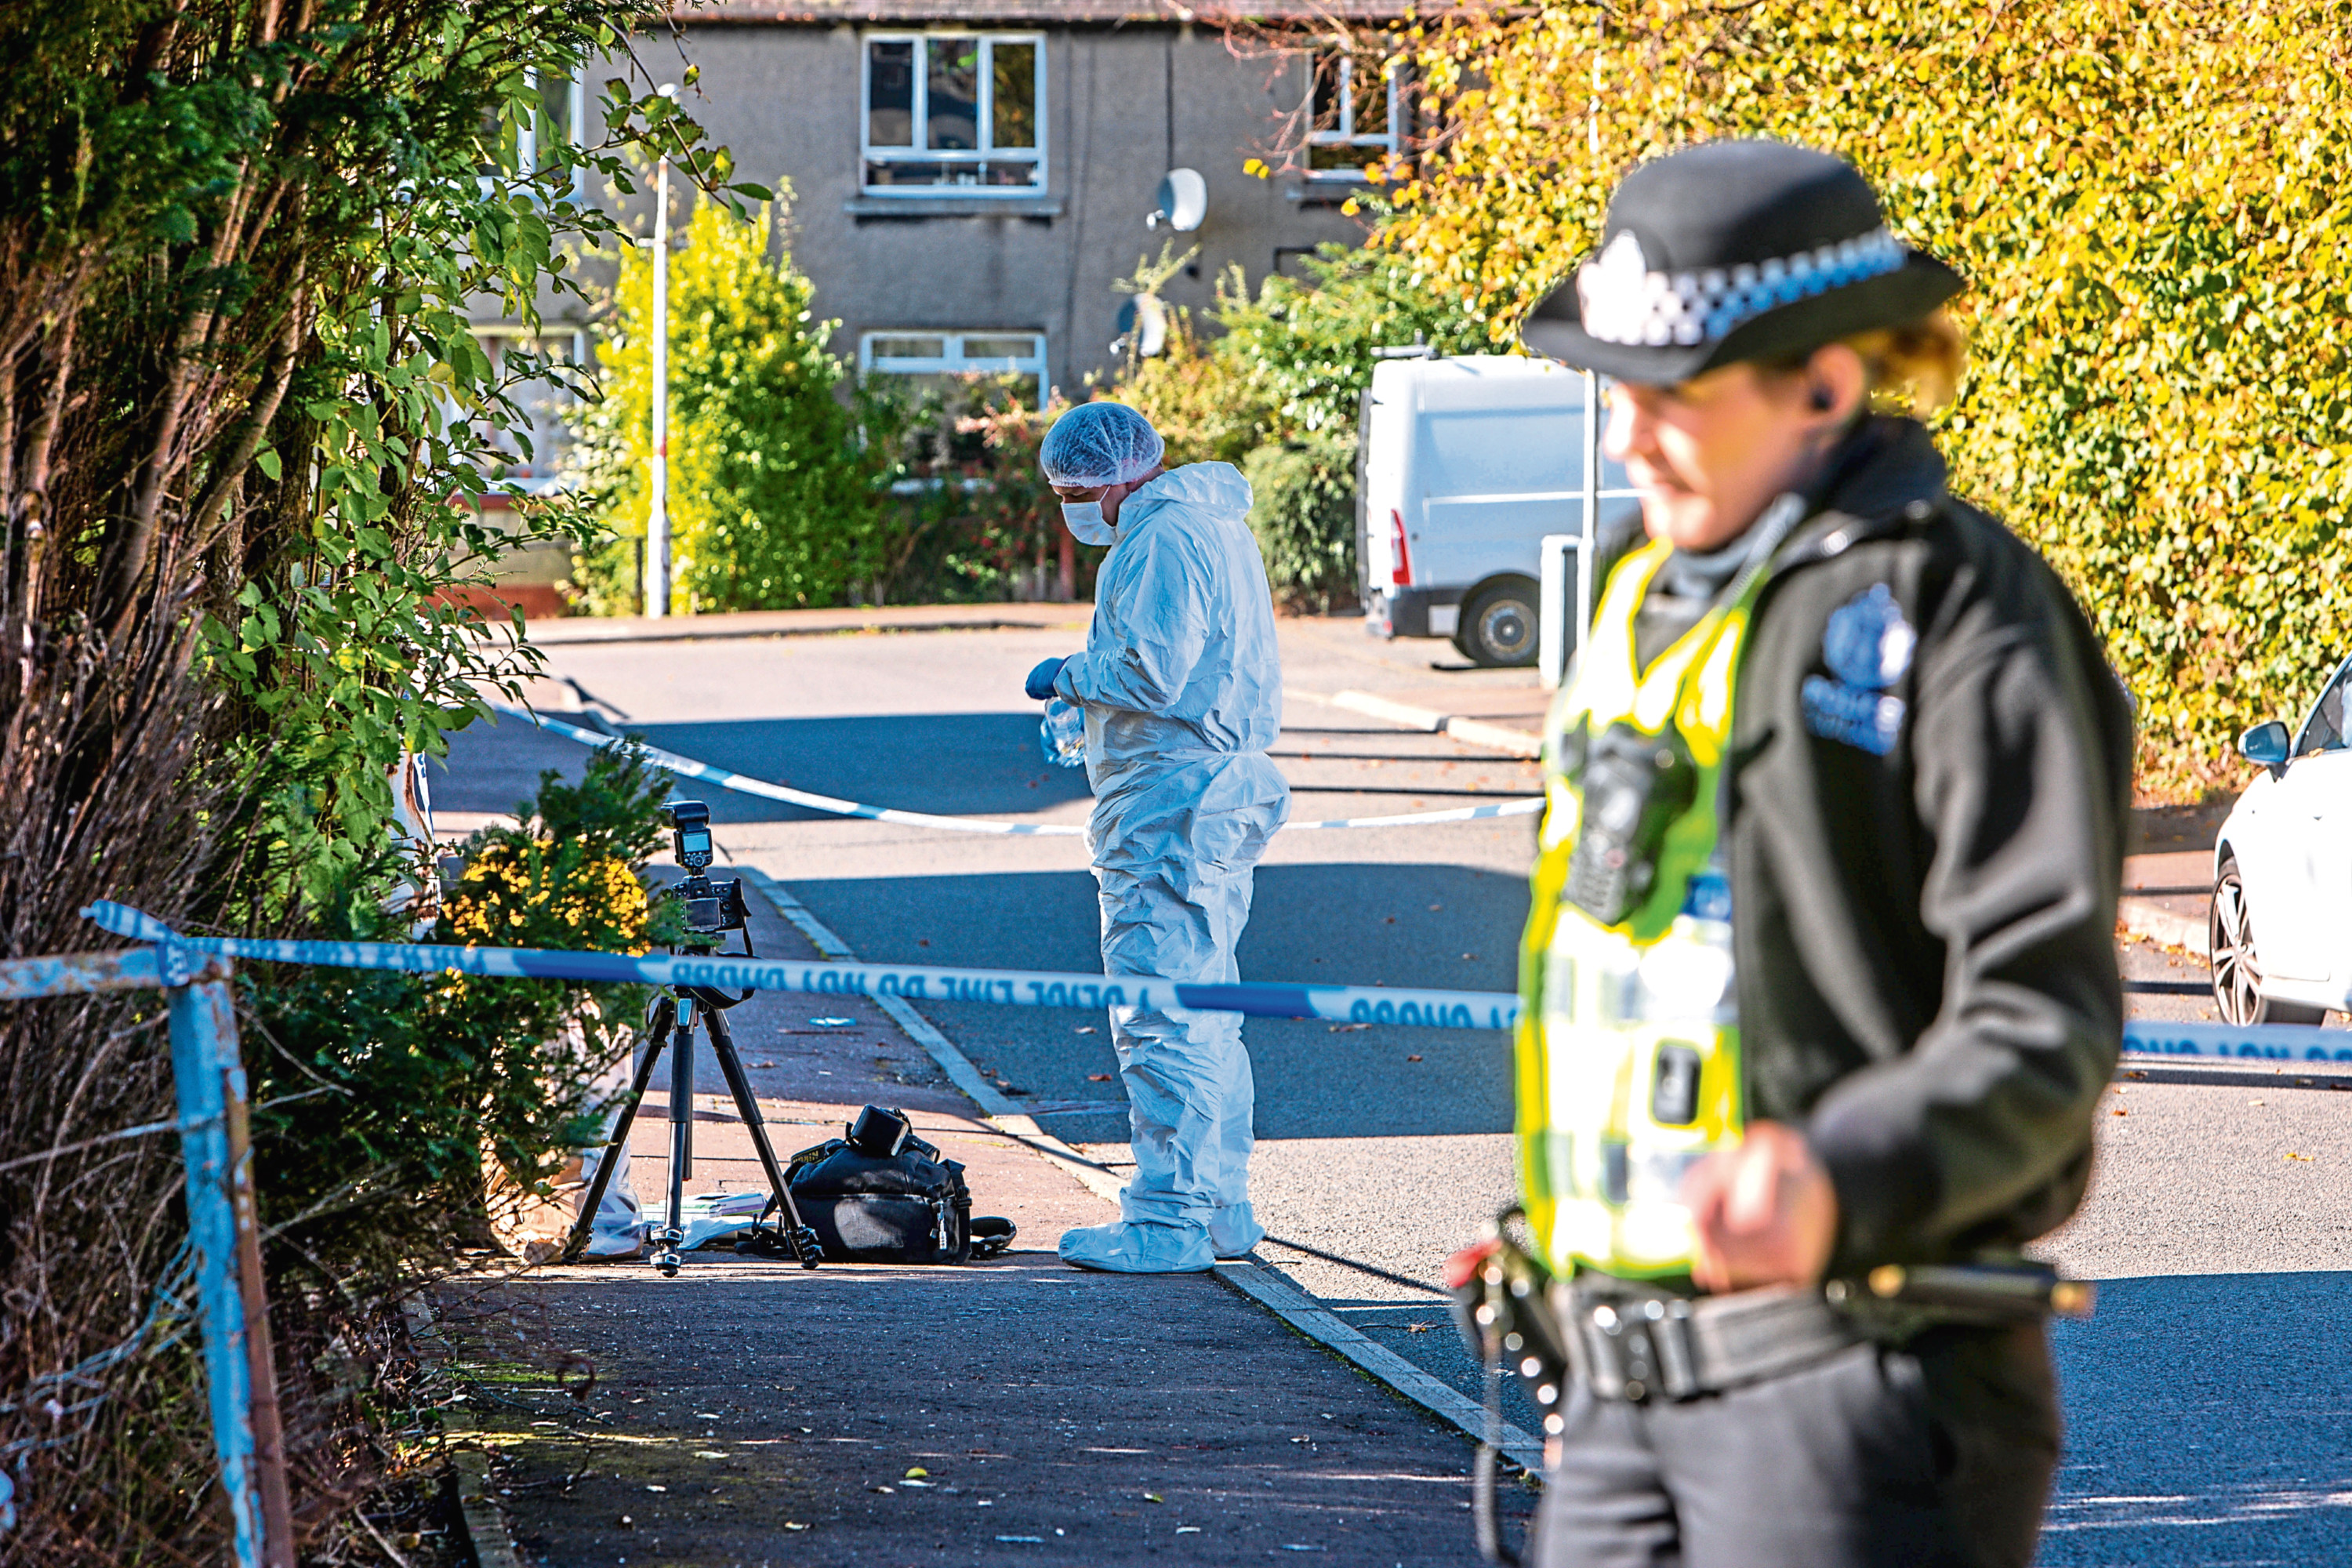 Police at the scene in Blairhall after the death of Claire Tunrbull.